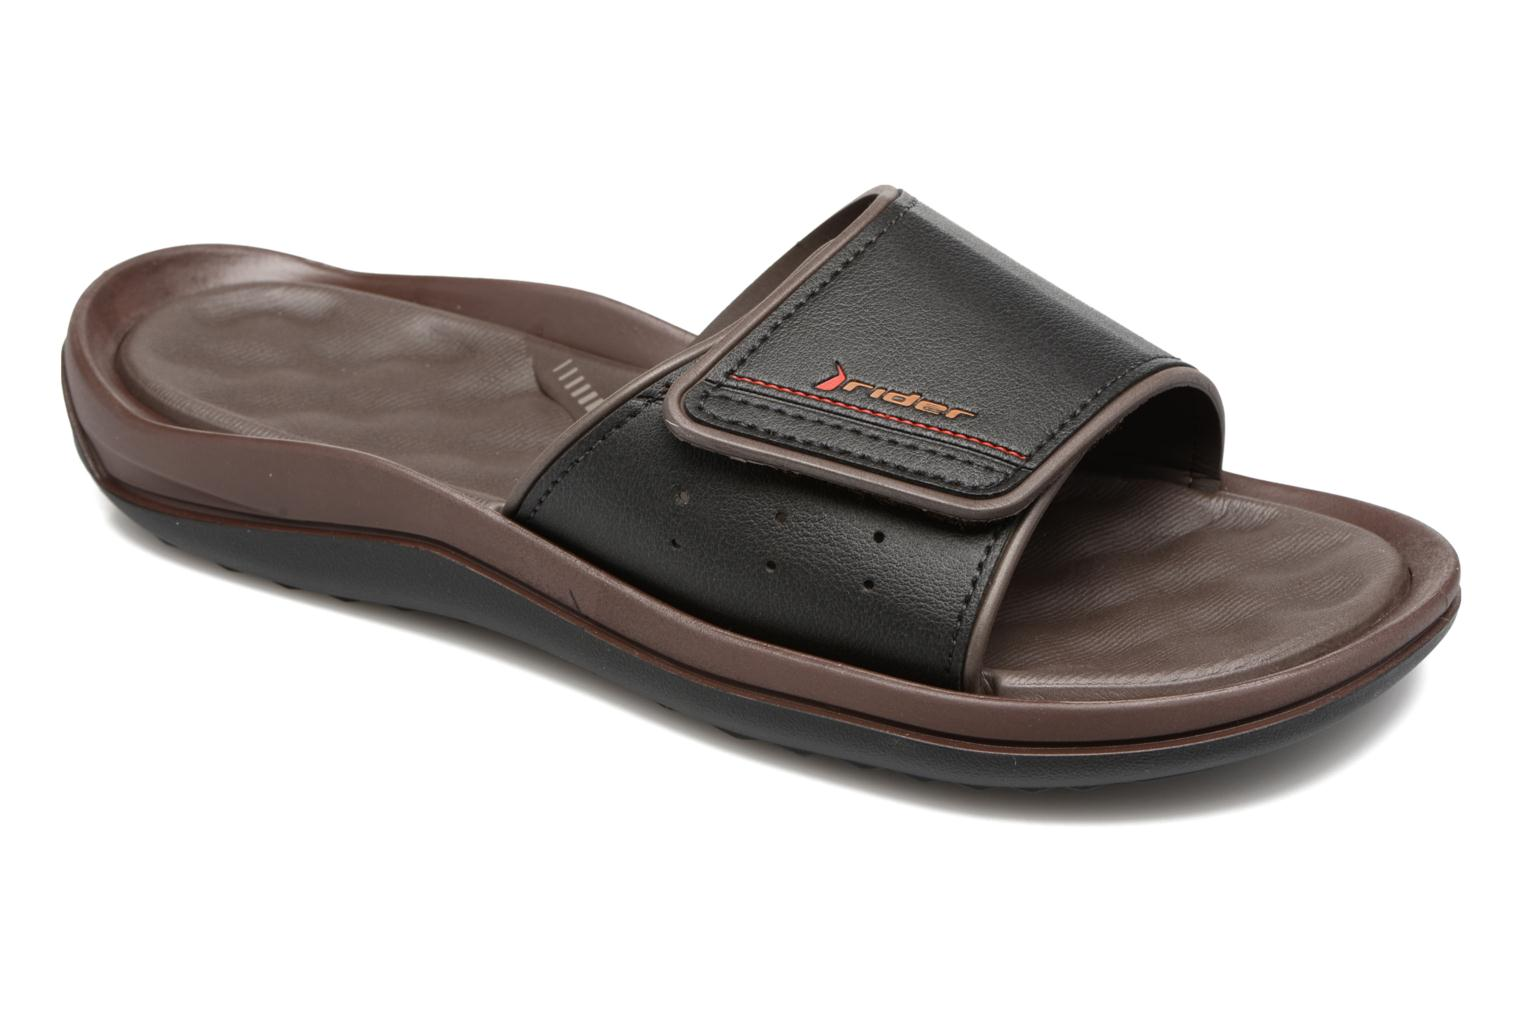 Dunas evolution slide Brown/black